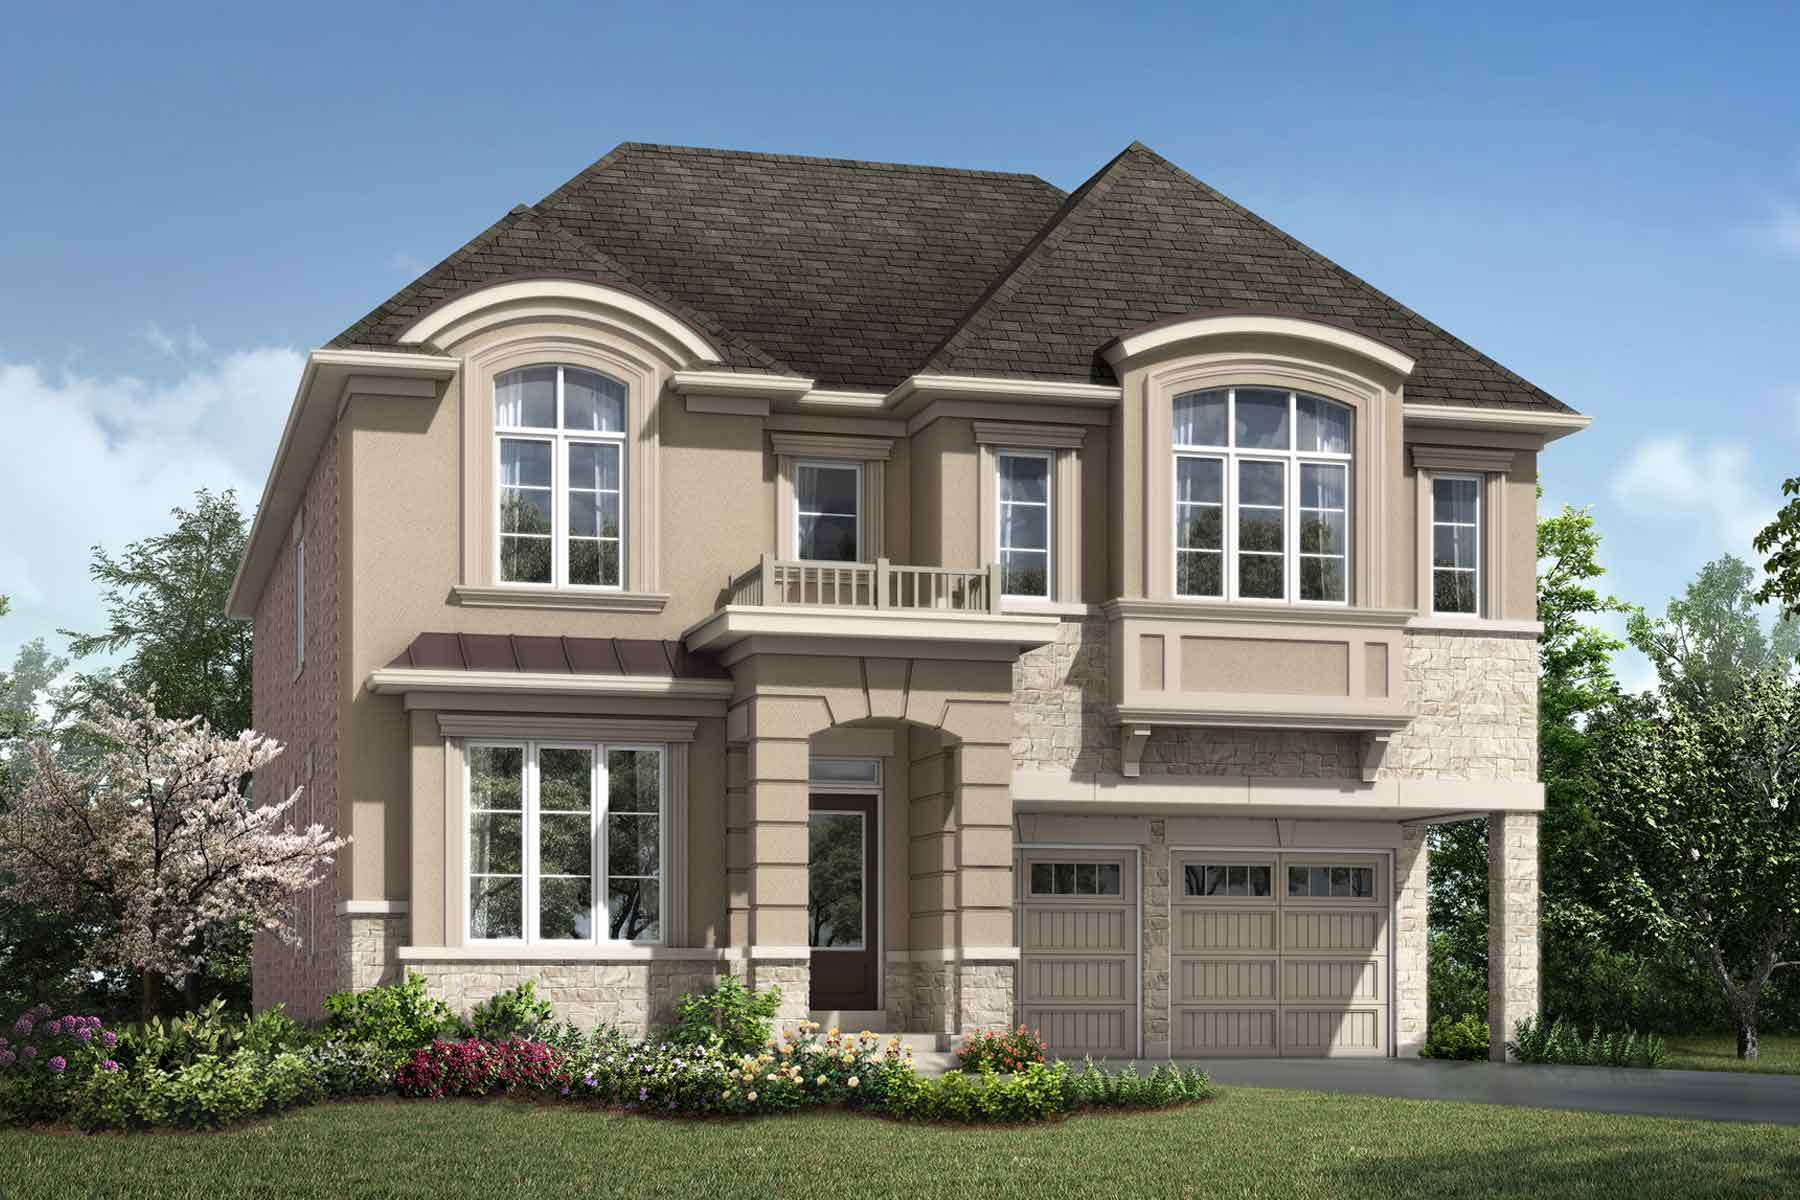 Sutton Plan Elevation Front at Hawthorne South Village Sixteen Mile Creek in Milton Ontario by Mattamy Homes